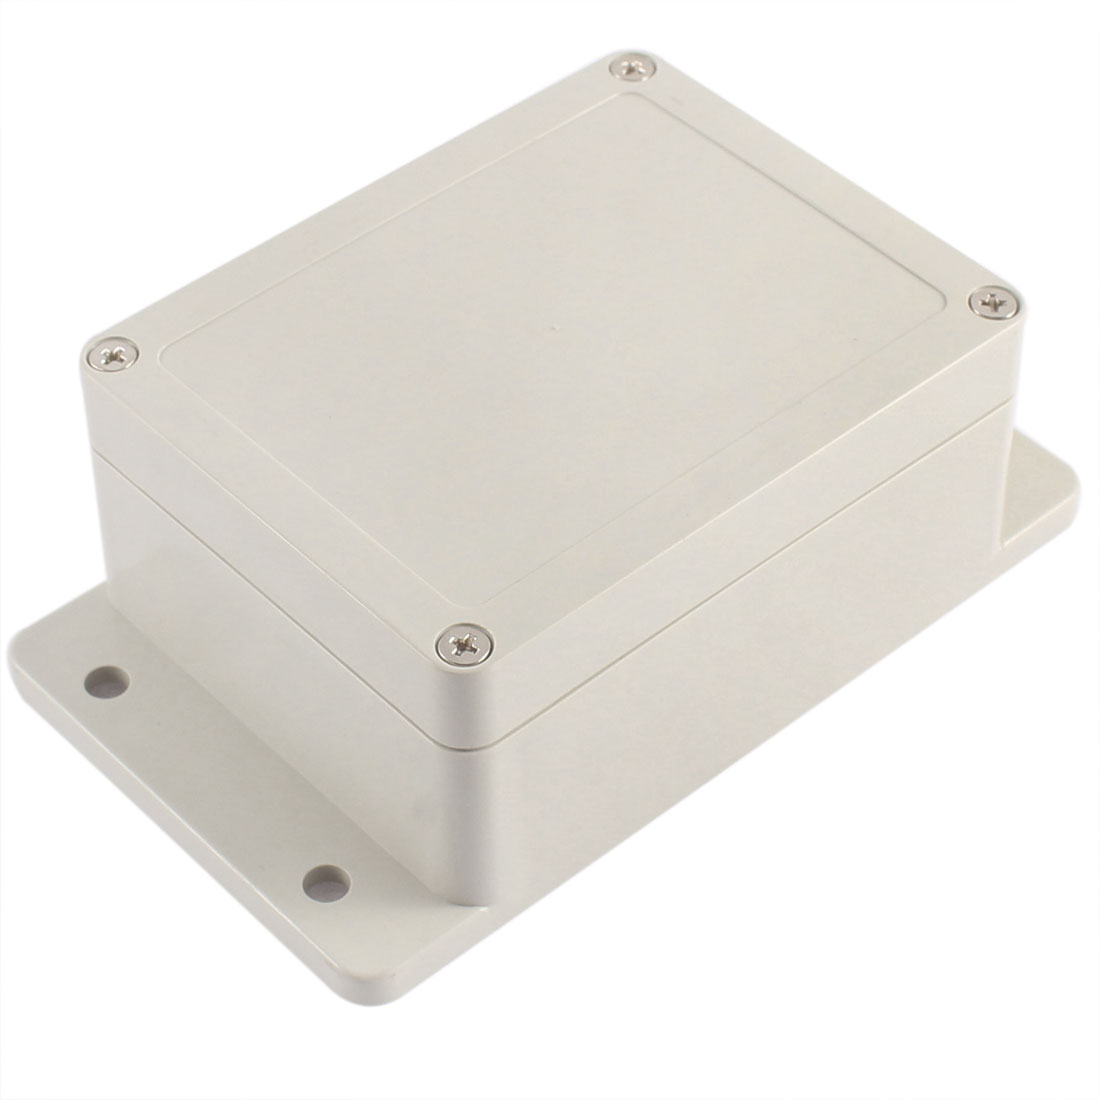 Dustproof IP65 Wall-mounted Plastic Junction Electronic Project Box Case 115 x 90 x 55mm